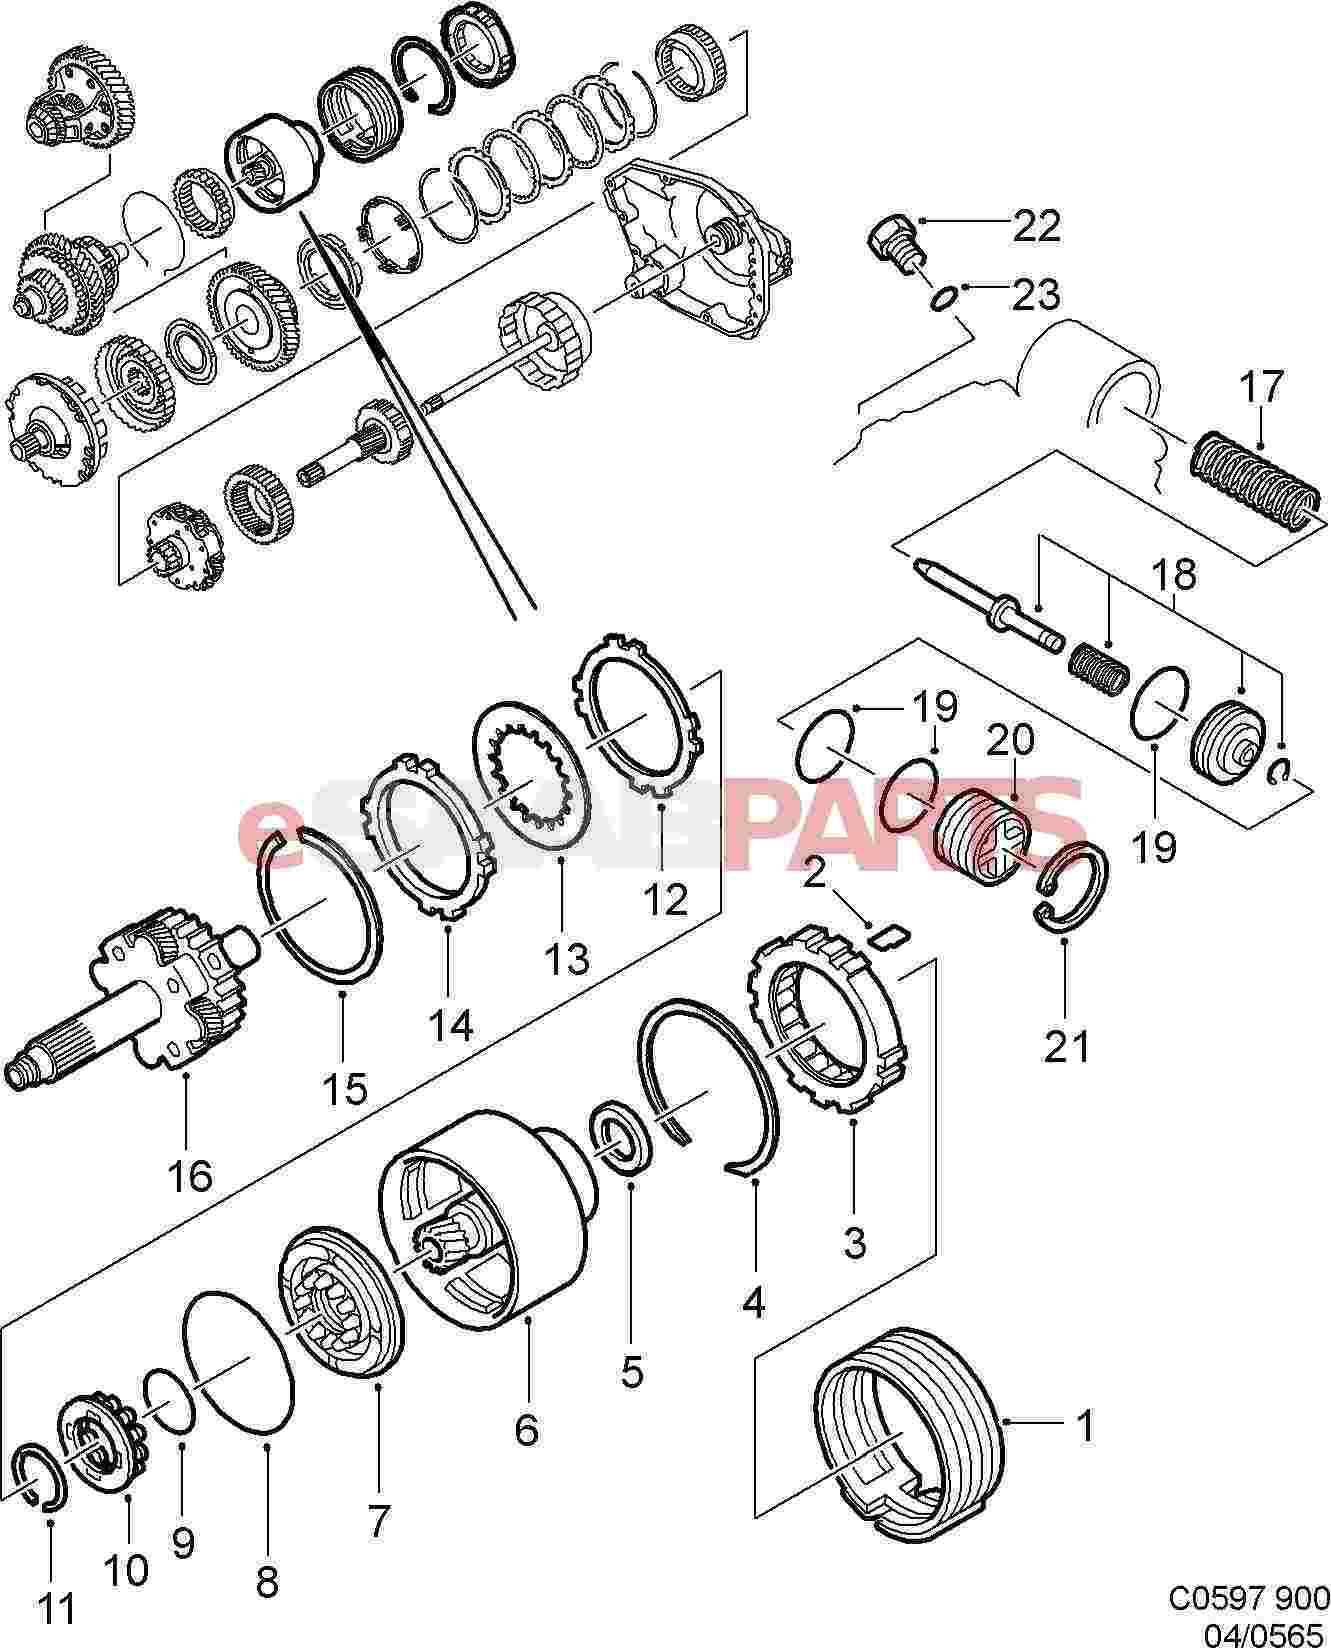 1993 Buick Roadmaster Engine Diagram Wiring Schematic 93 Pontiac Grand Prix Books Of U2022 Rh Mattersoflifecoaching Co Specs 1994